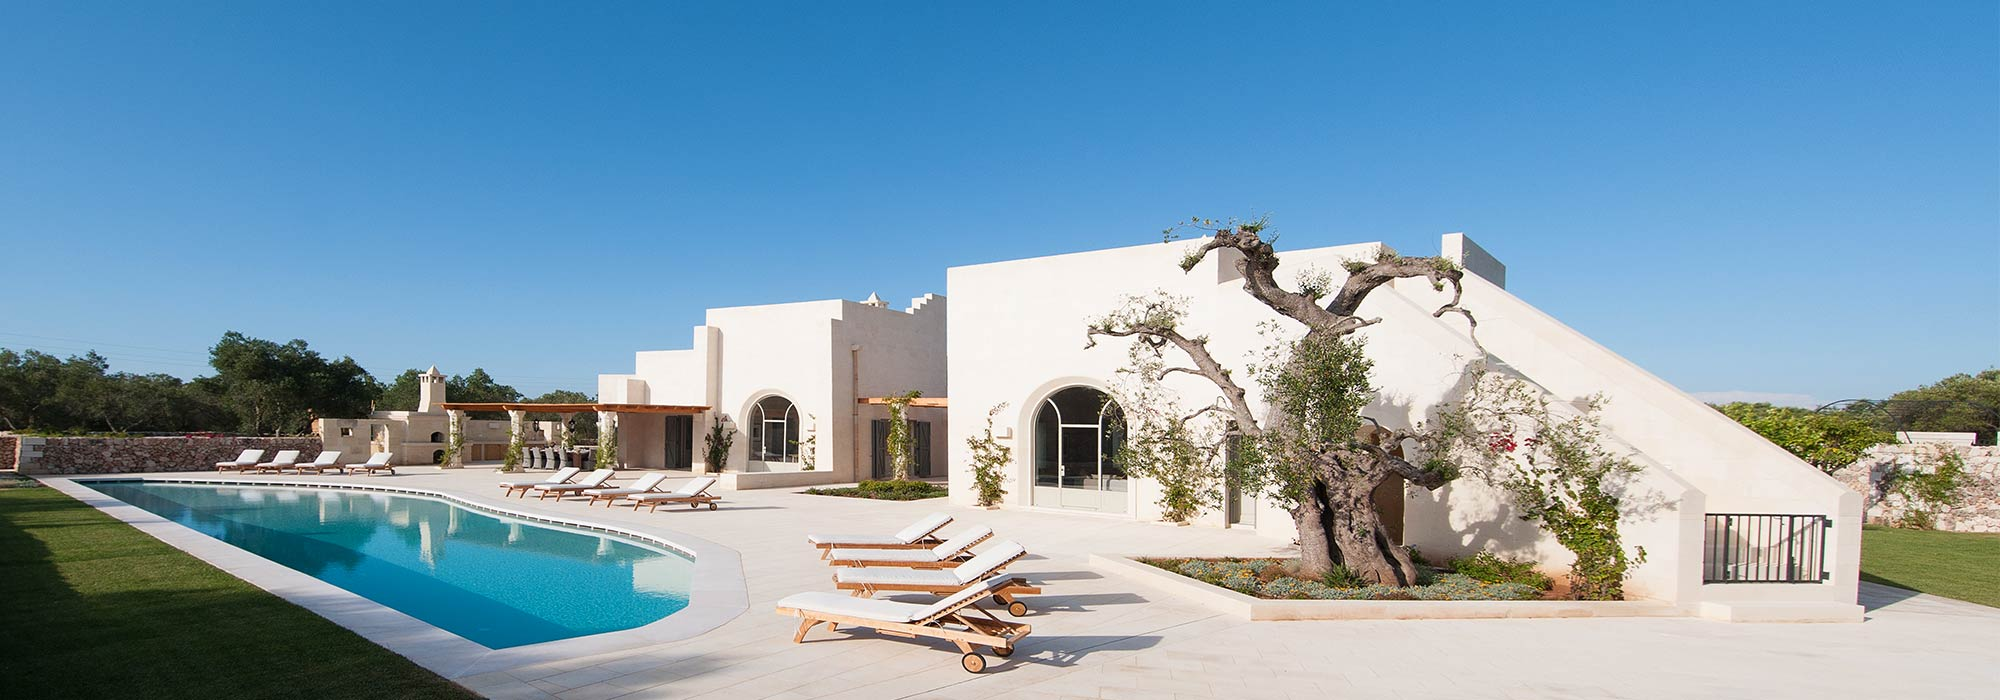 Masseria Campo dei Fiori – Luxury Rental Villa with pool in Puglia – Sleeps 12 – SPECIAL OFFERS